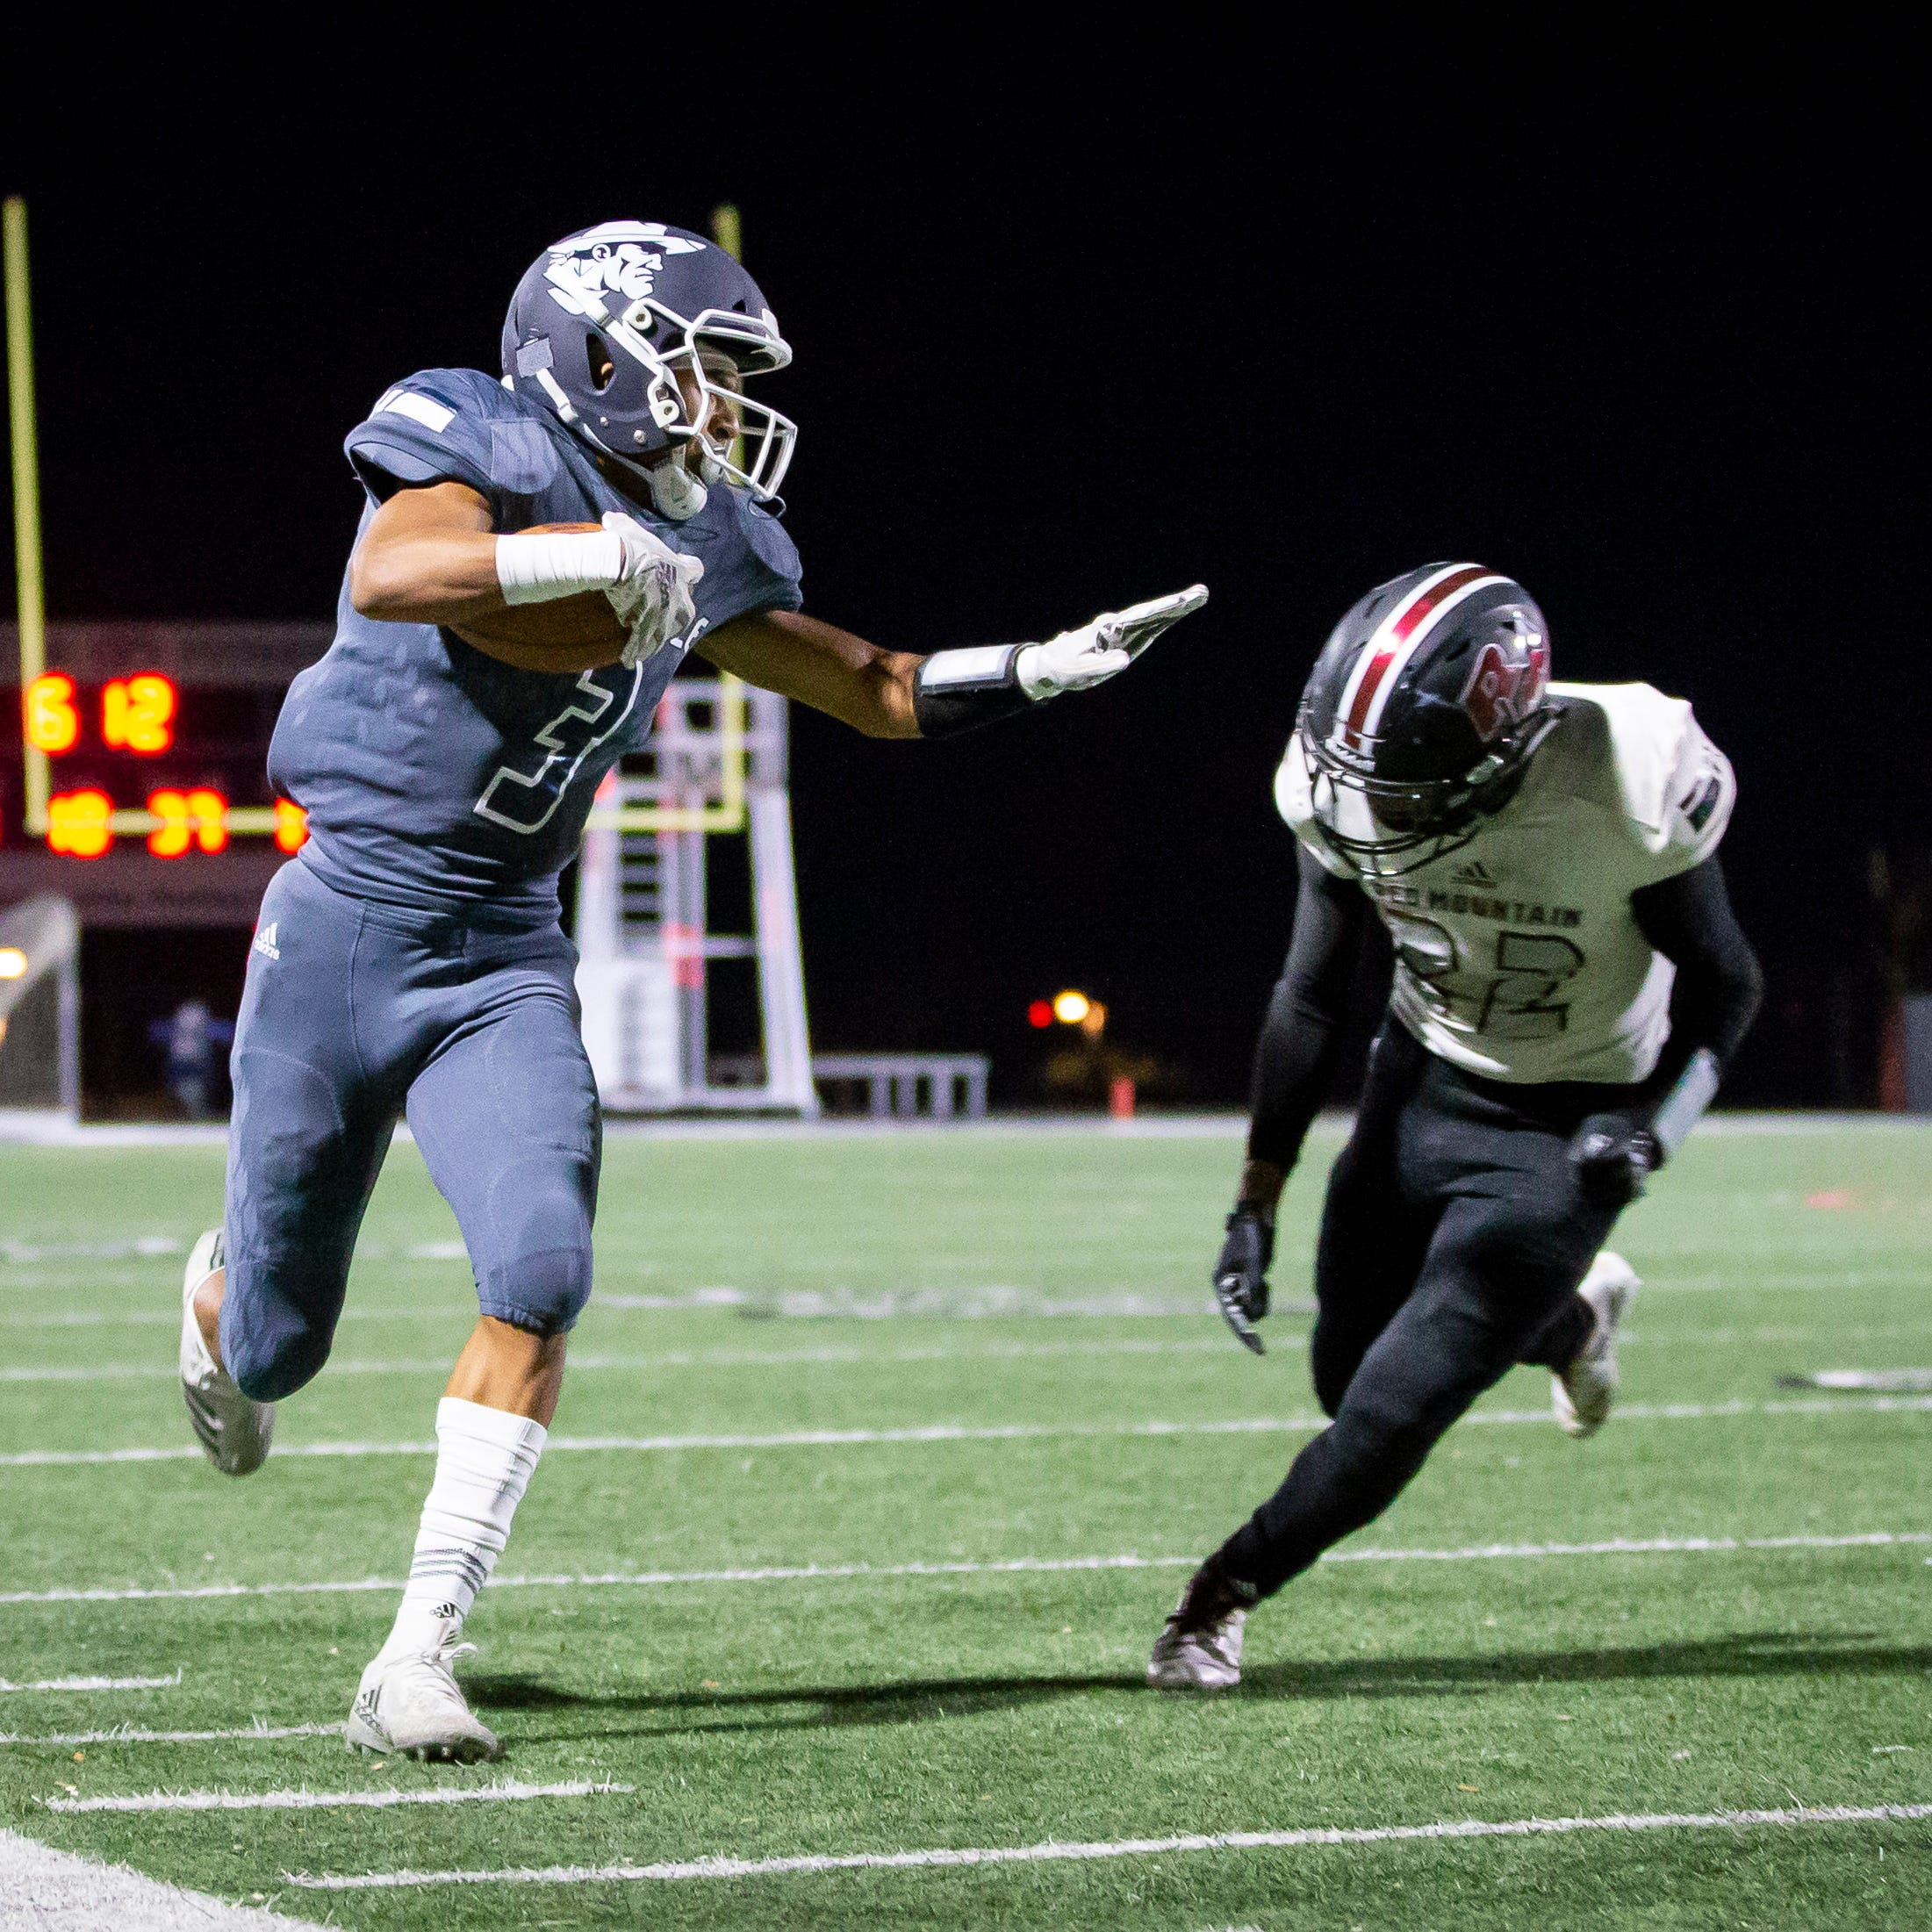 Junior wide receiver Marcus Libman (3) of the Pinnacle Pioneers runs the ball against the Red Mountain Mountain Lions during the playoff game at Pinnacle High School on Friday, November 9, 2018 in Phoenix, Arizona. #azhsfb